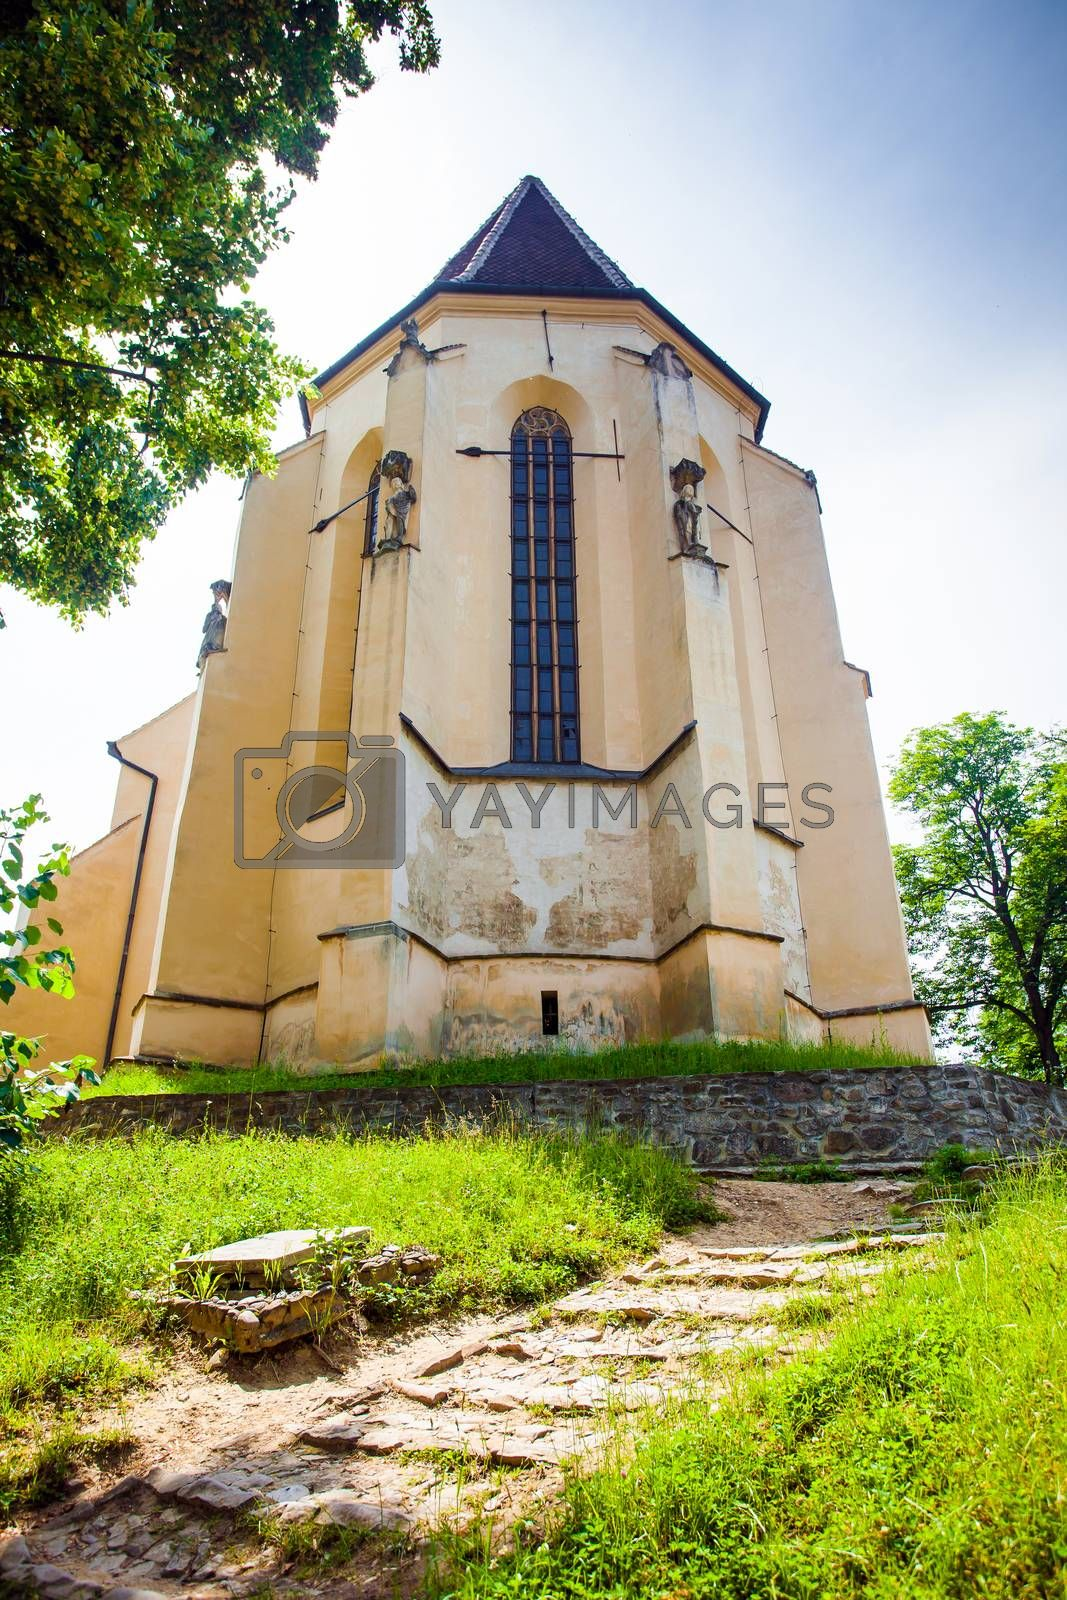 Turda, Romania - June 23, 2013: Church of the Hill from Sighisoara medieval city, Transylvania, Romania